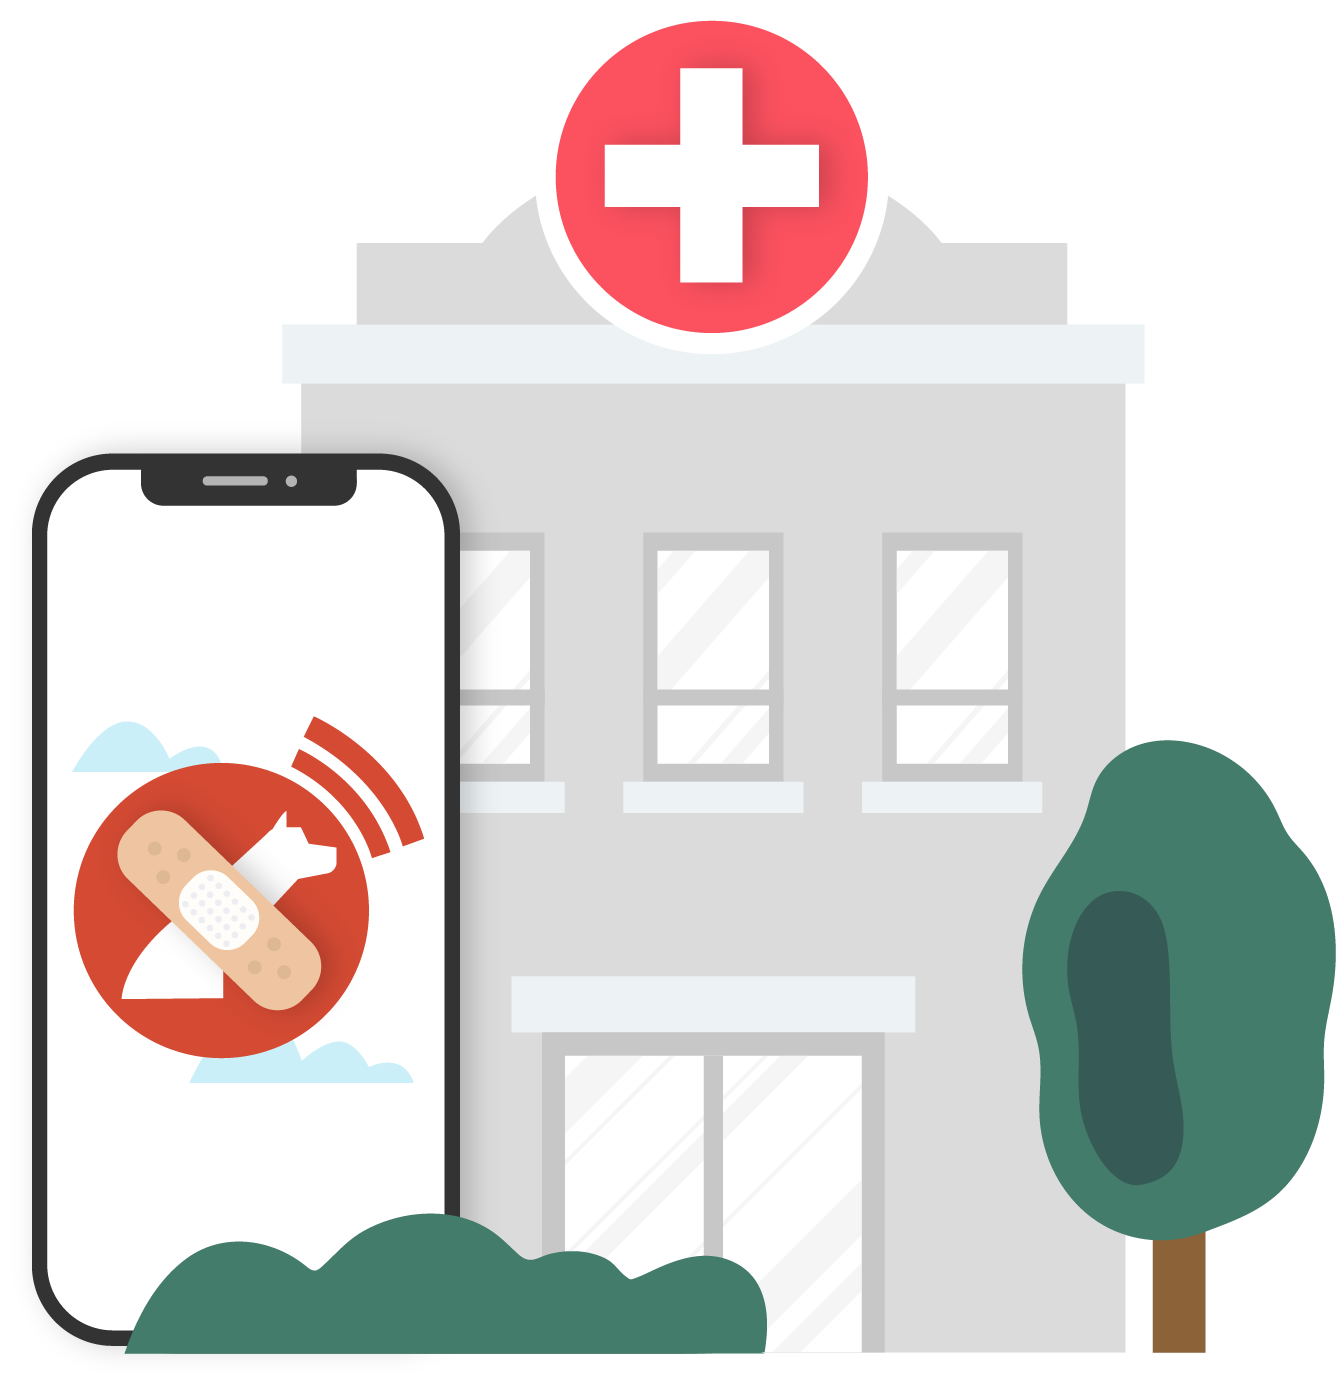 A healthcare facility next to a phone using the Lazarillo App